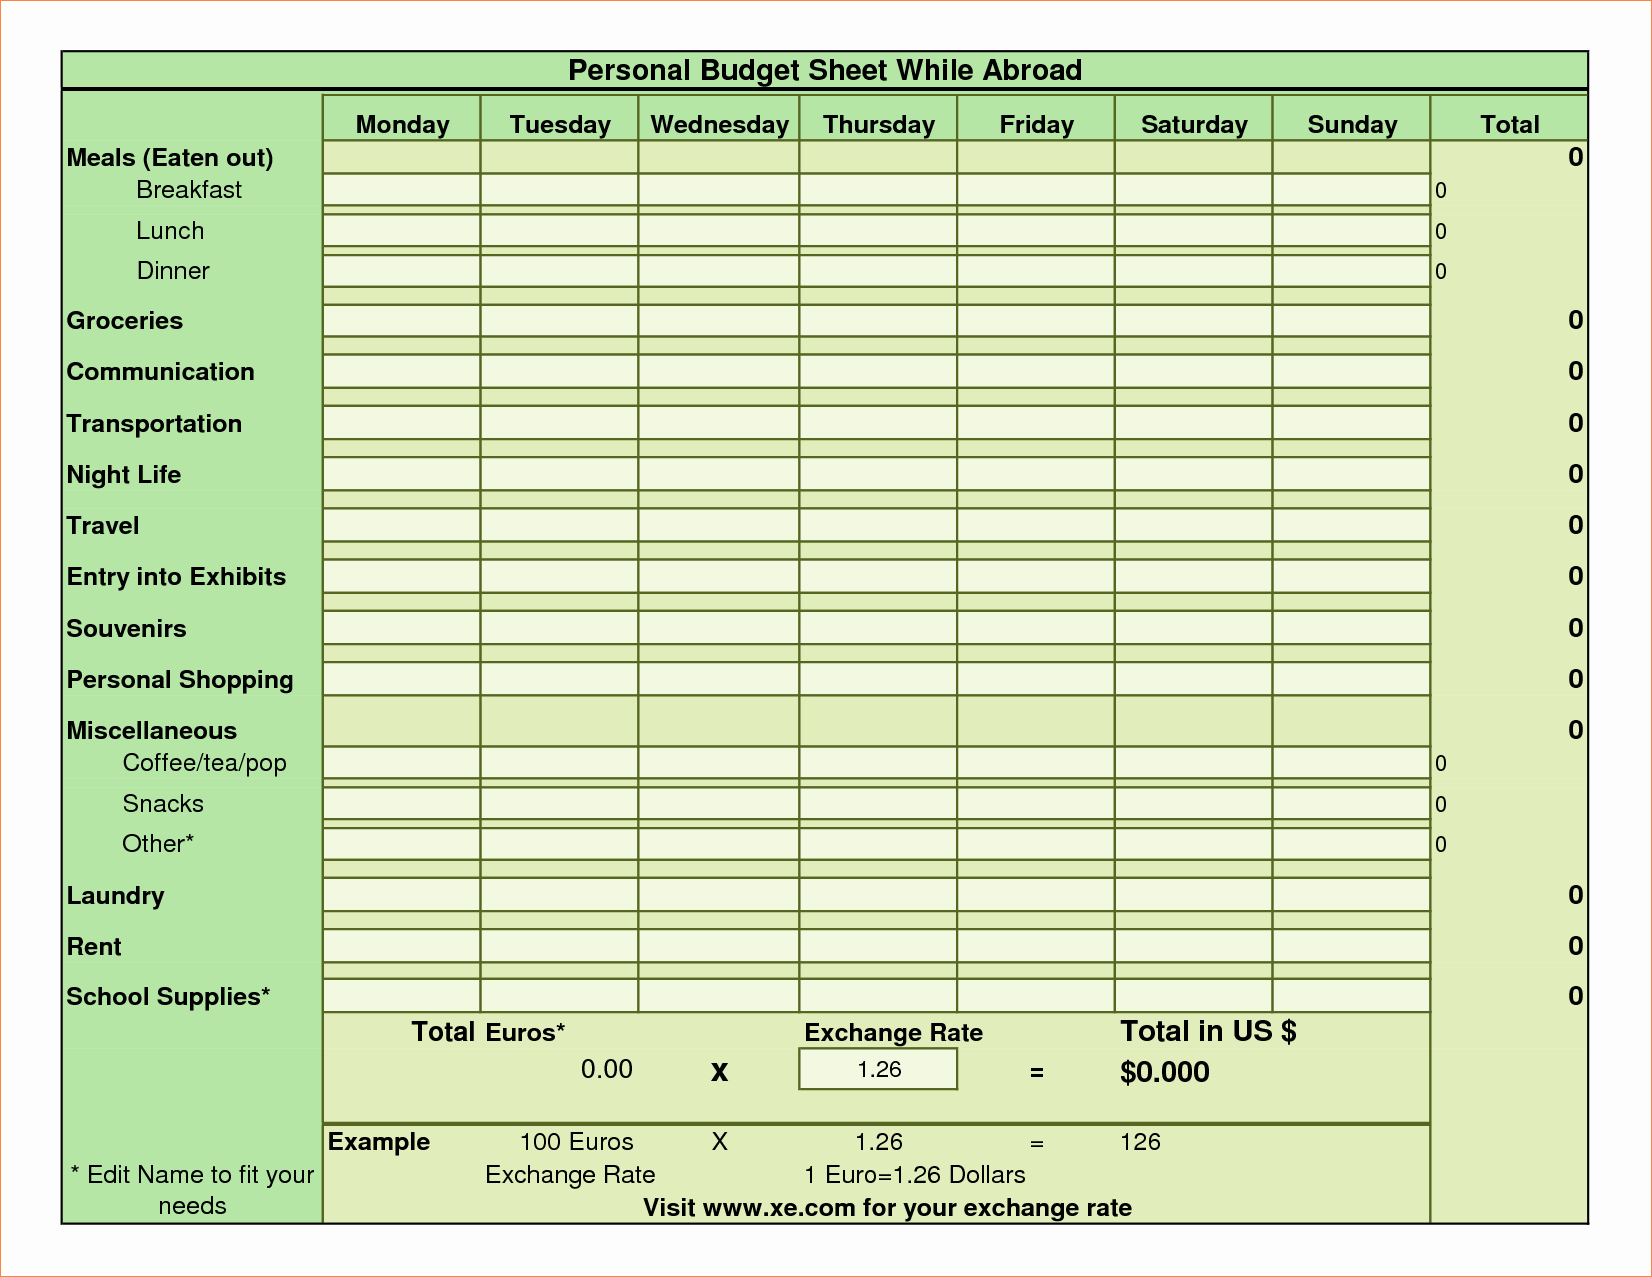 Weekly and Monthly Budget Template Lovely Bi Weekly Personal Bud Template Excel why I Bud